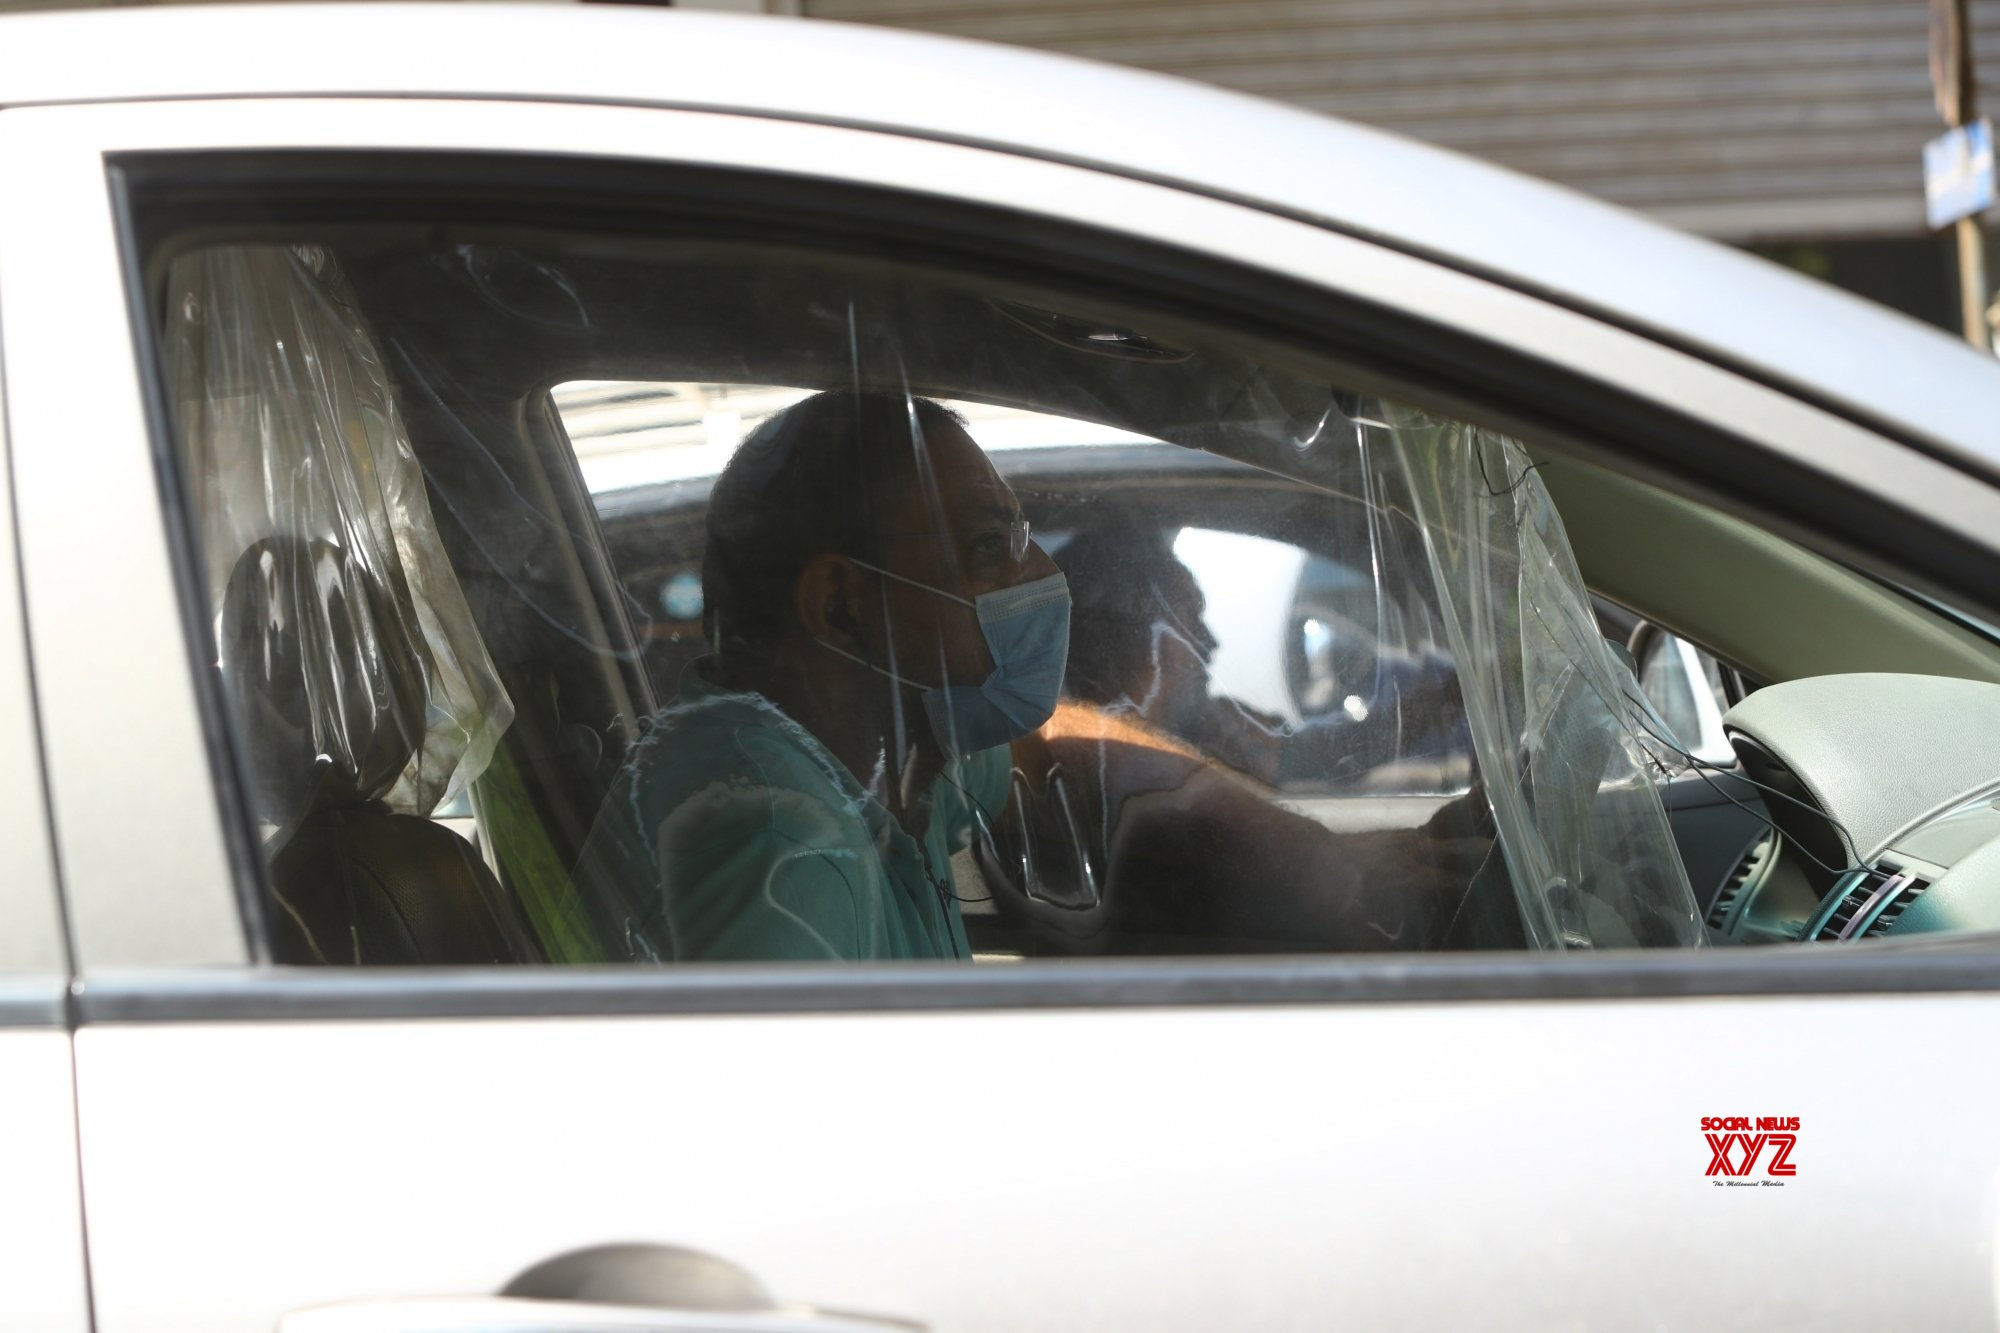 Wearing face mask compulsory in vehicles: Delhi HC